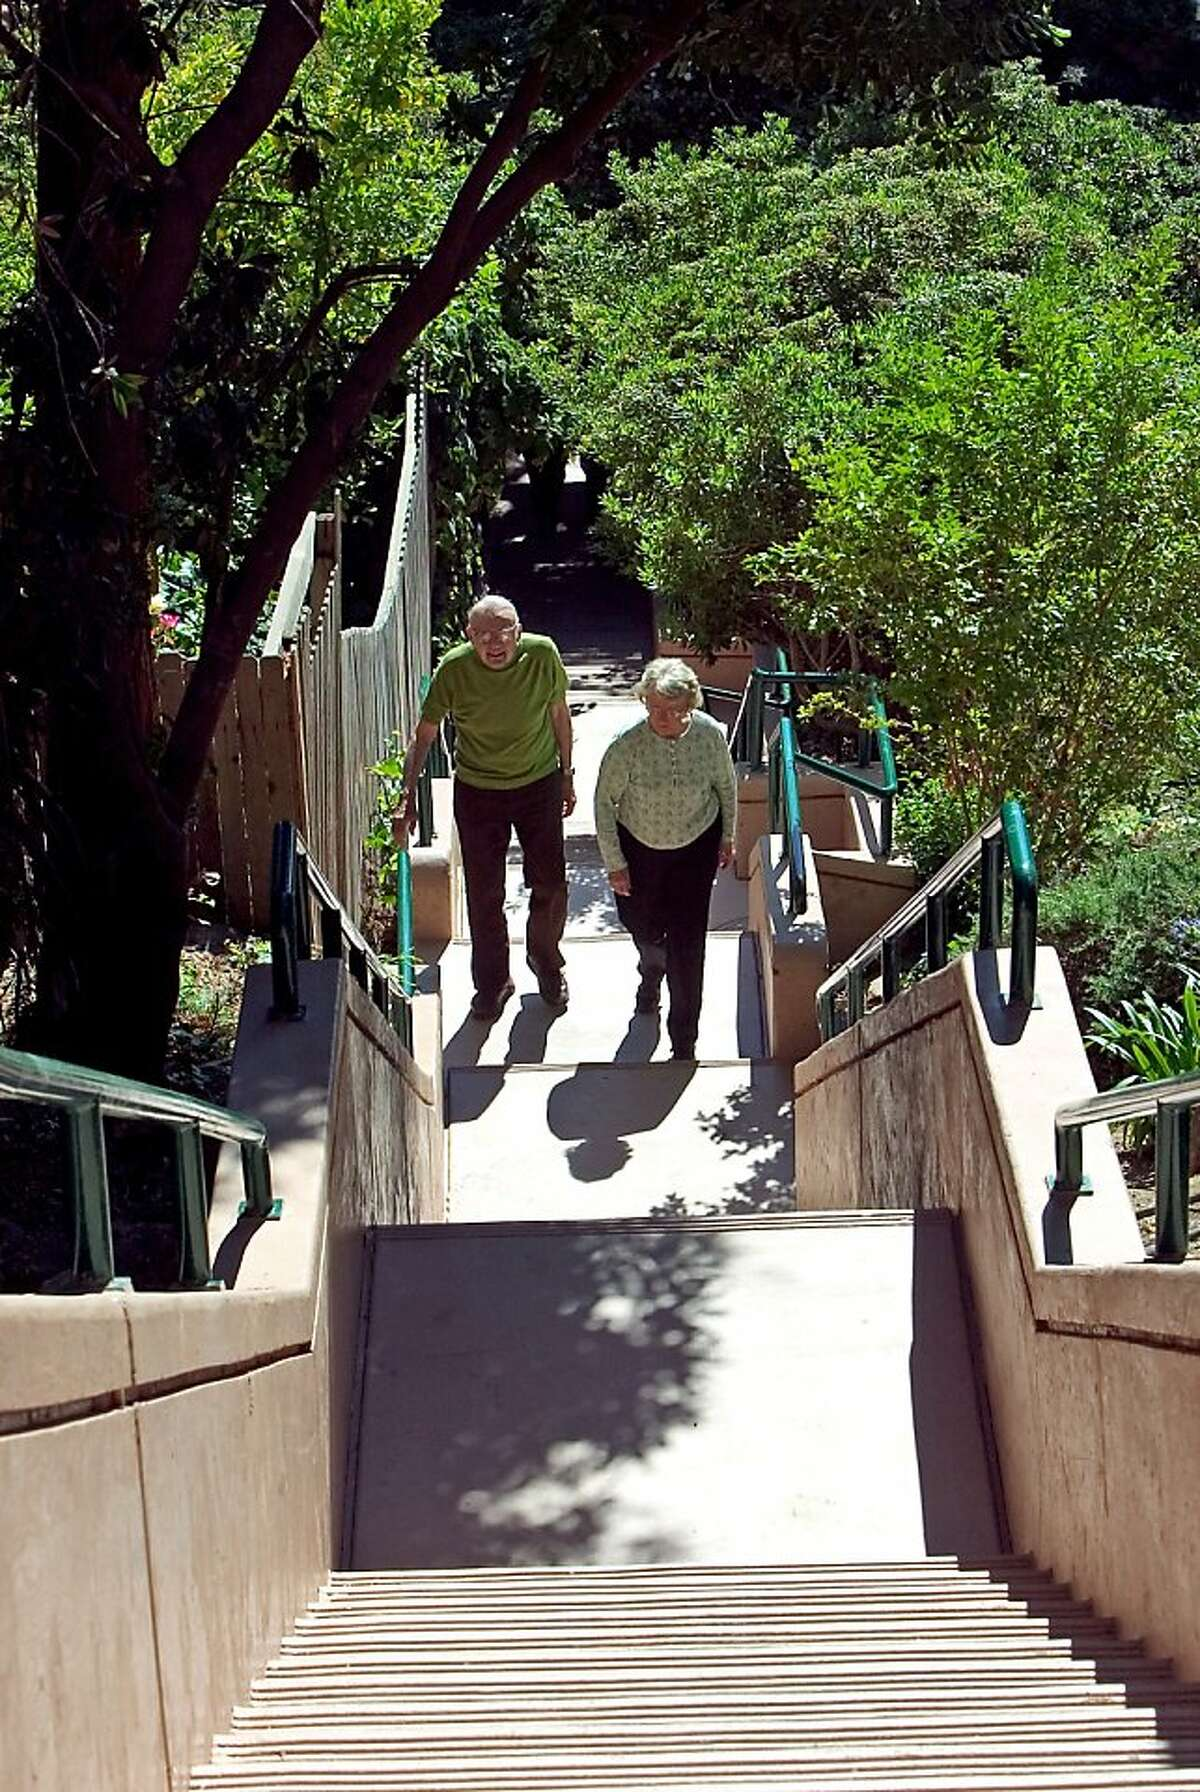 A file photo of local residents walking the Oakmore stairs in the Oakmore district of Oakland.